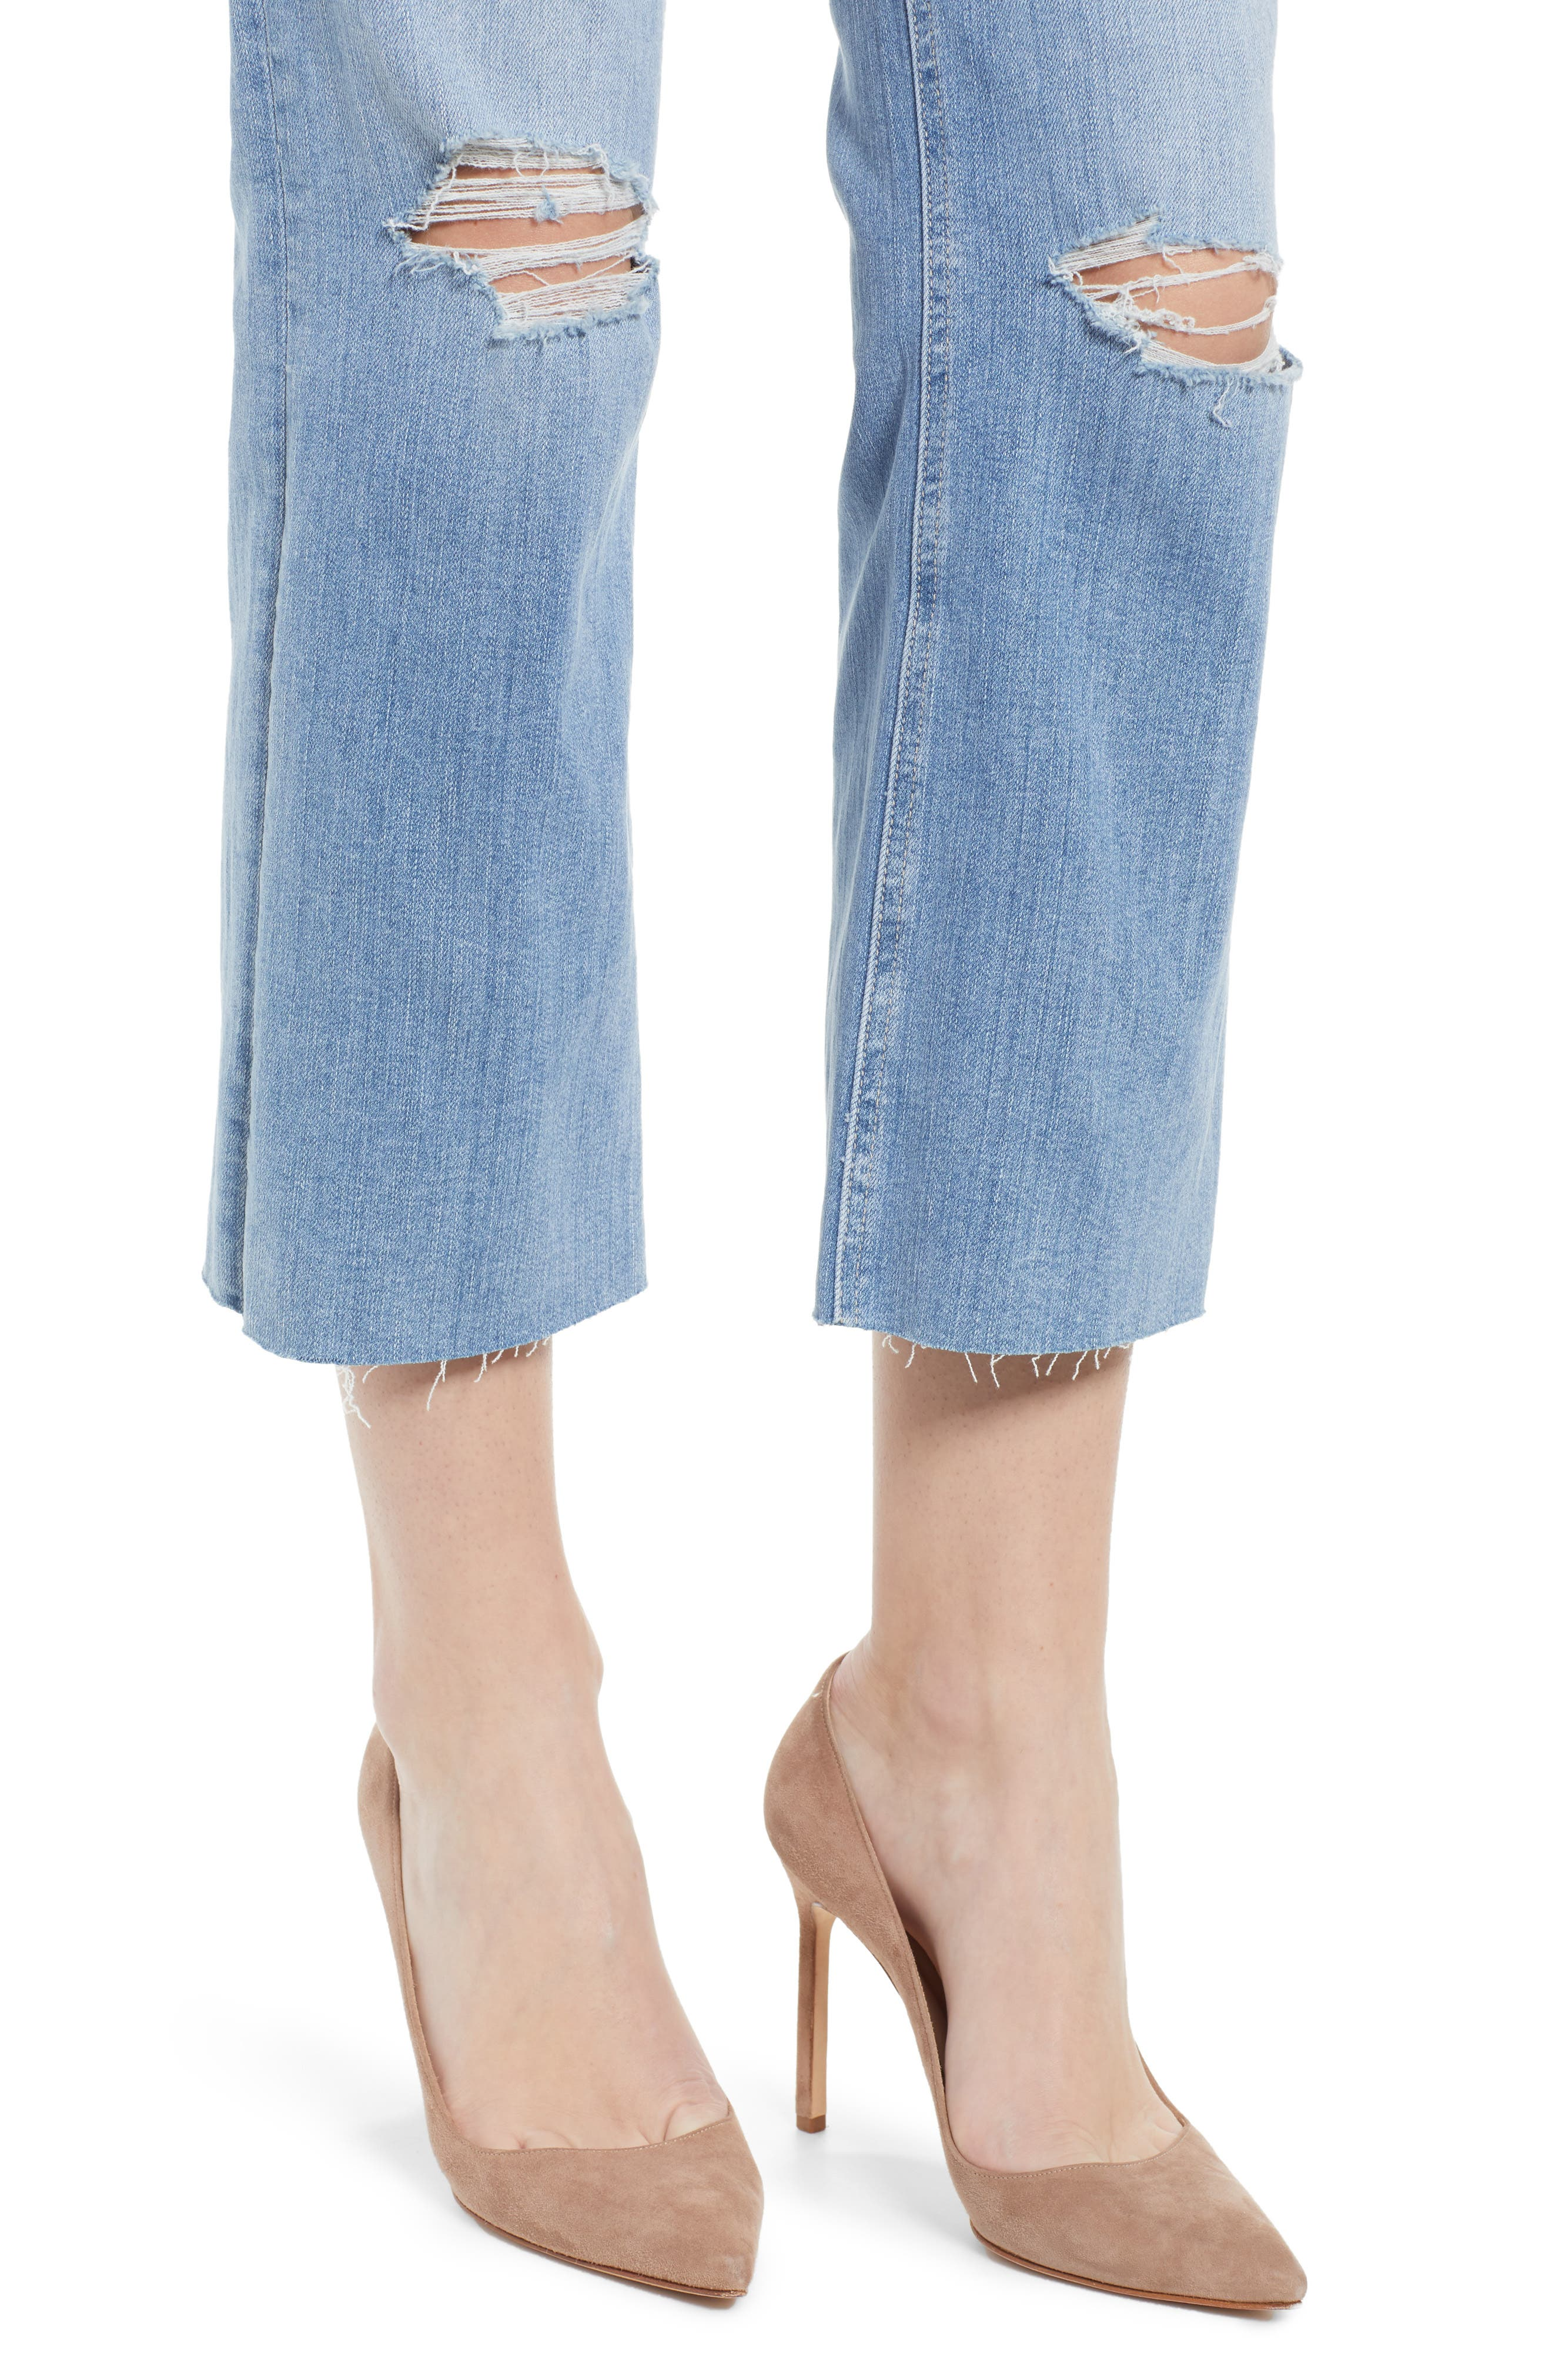 PAIGE, Atley Ripped Raw Hem Ankle Flare Jeans, Alternate thumbnail 5, color, FLORETTA DESTRUCTED